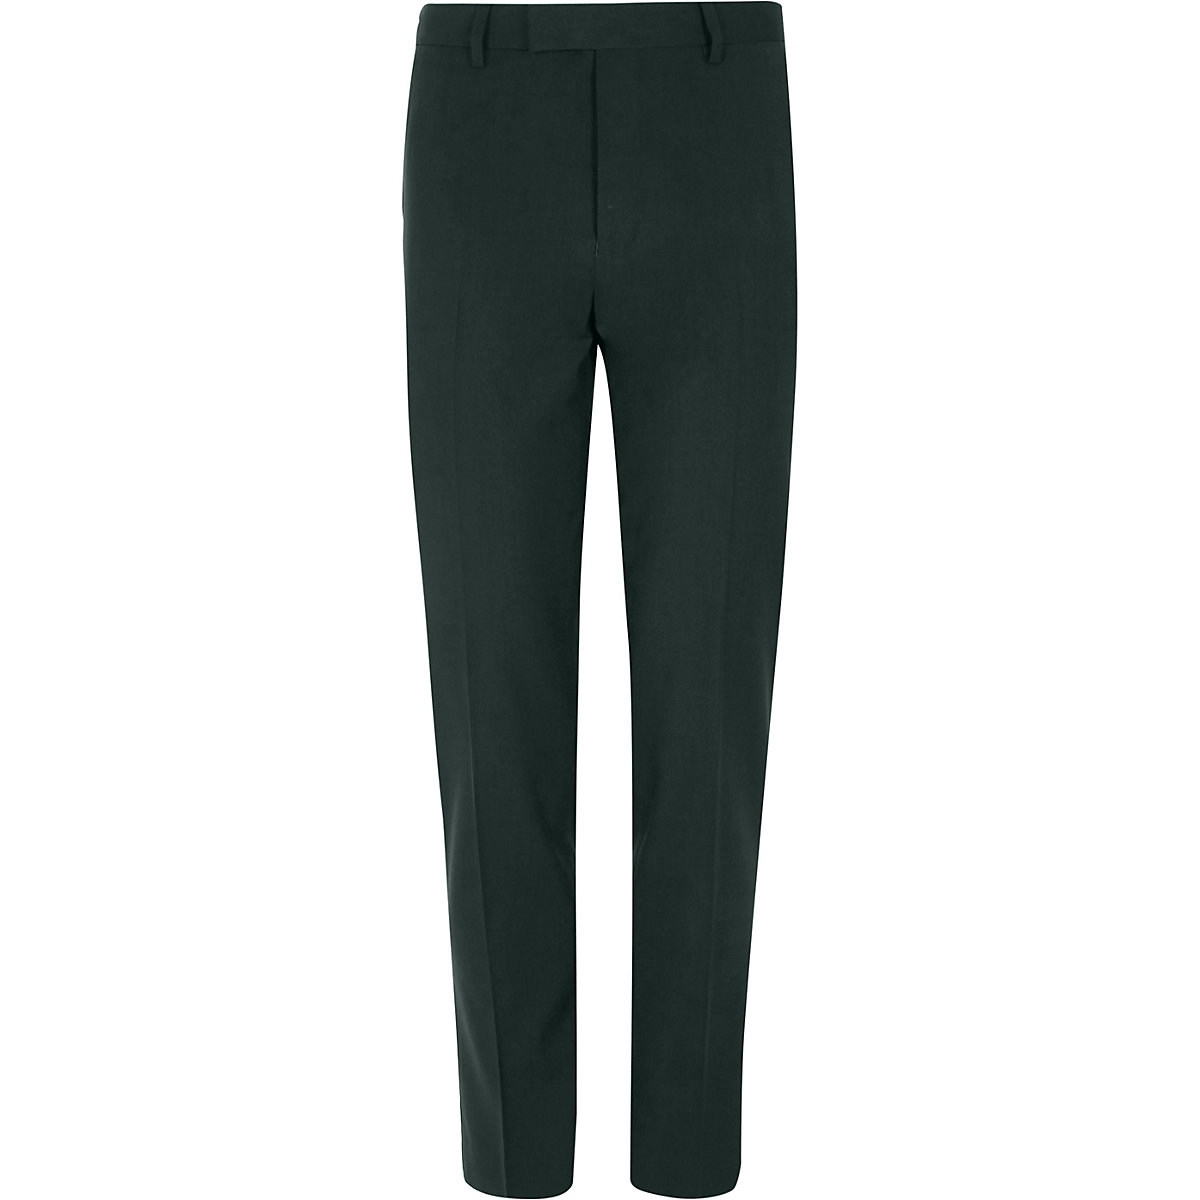 Dark green stretch skinny fit suit trousers